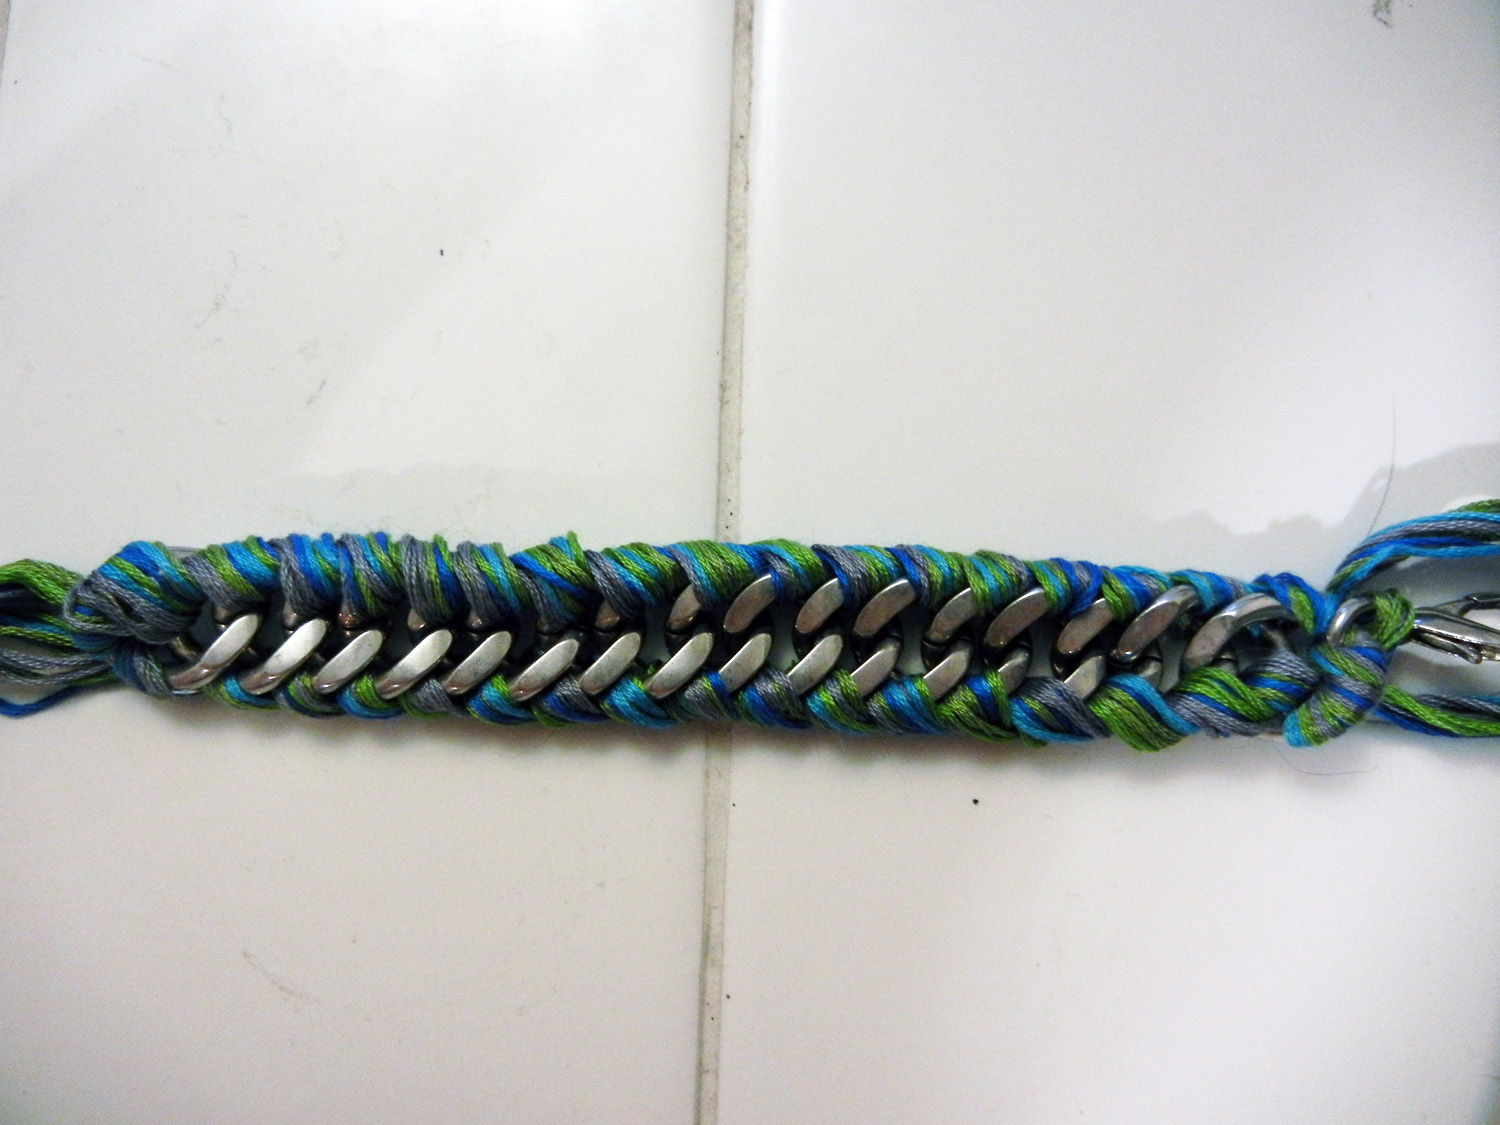 Embroidery Floss Friendship Bracelets - Buzzle Web Portal